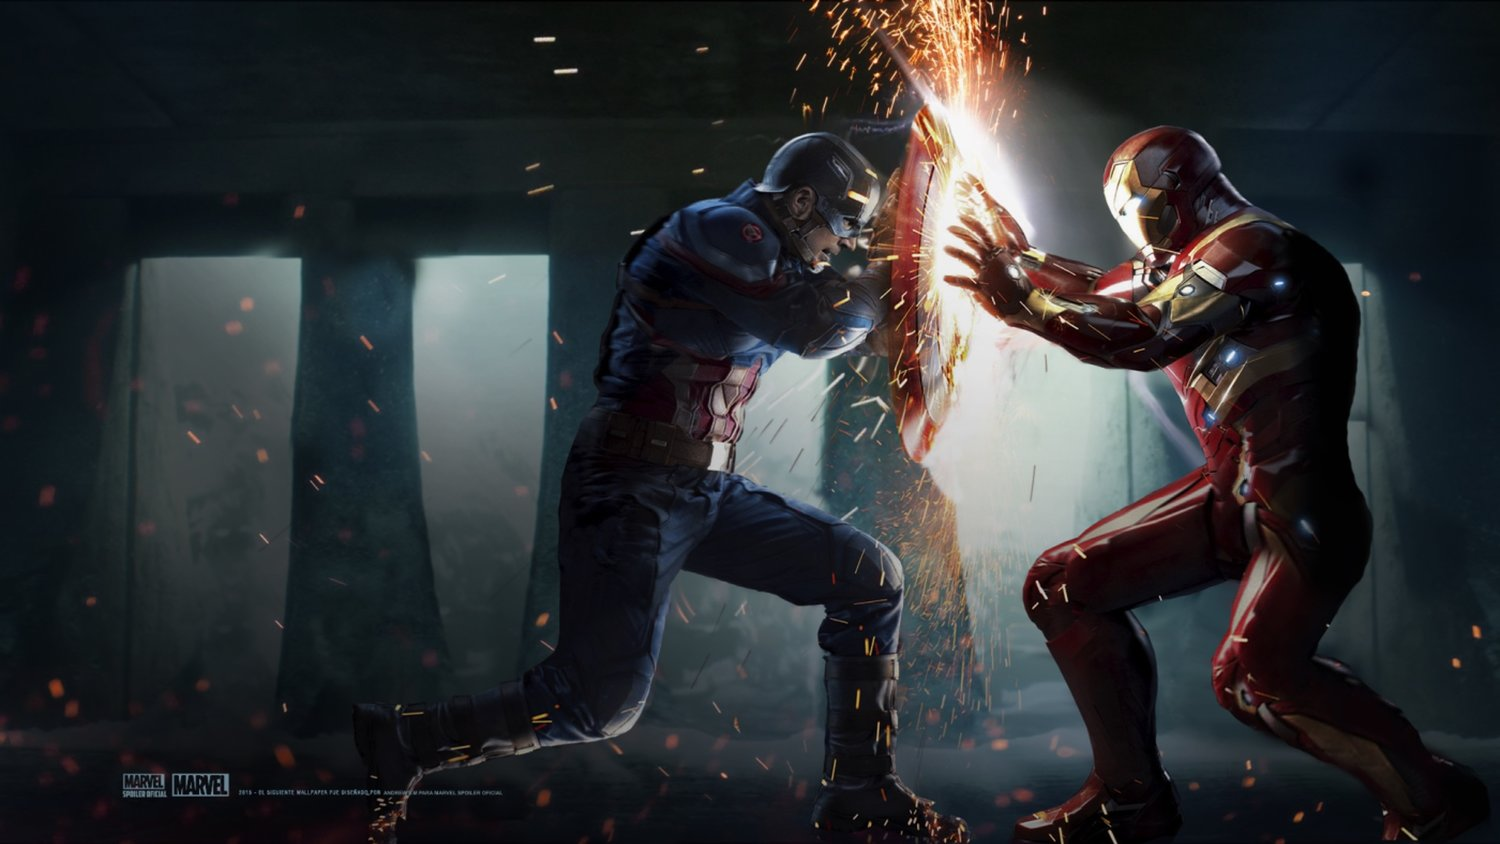 22ce95e7307 CAPTAIN AMERICA  CIVIL WAR Stunt Coordinator Shares Cool BTS Footage of  Iron Man and Captain